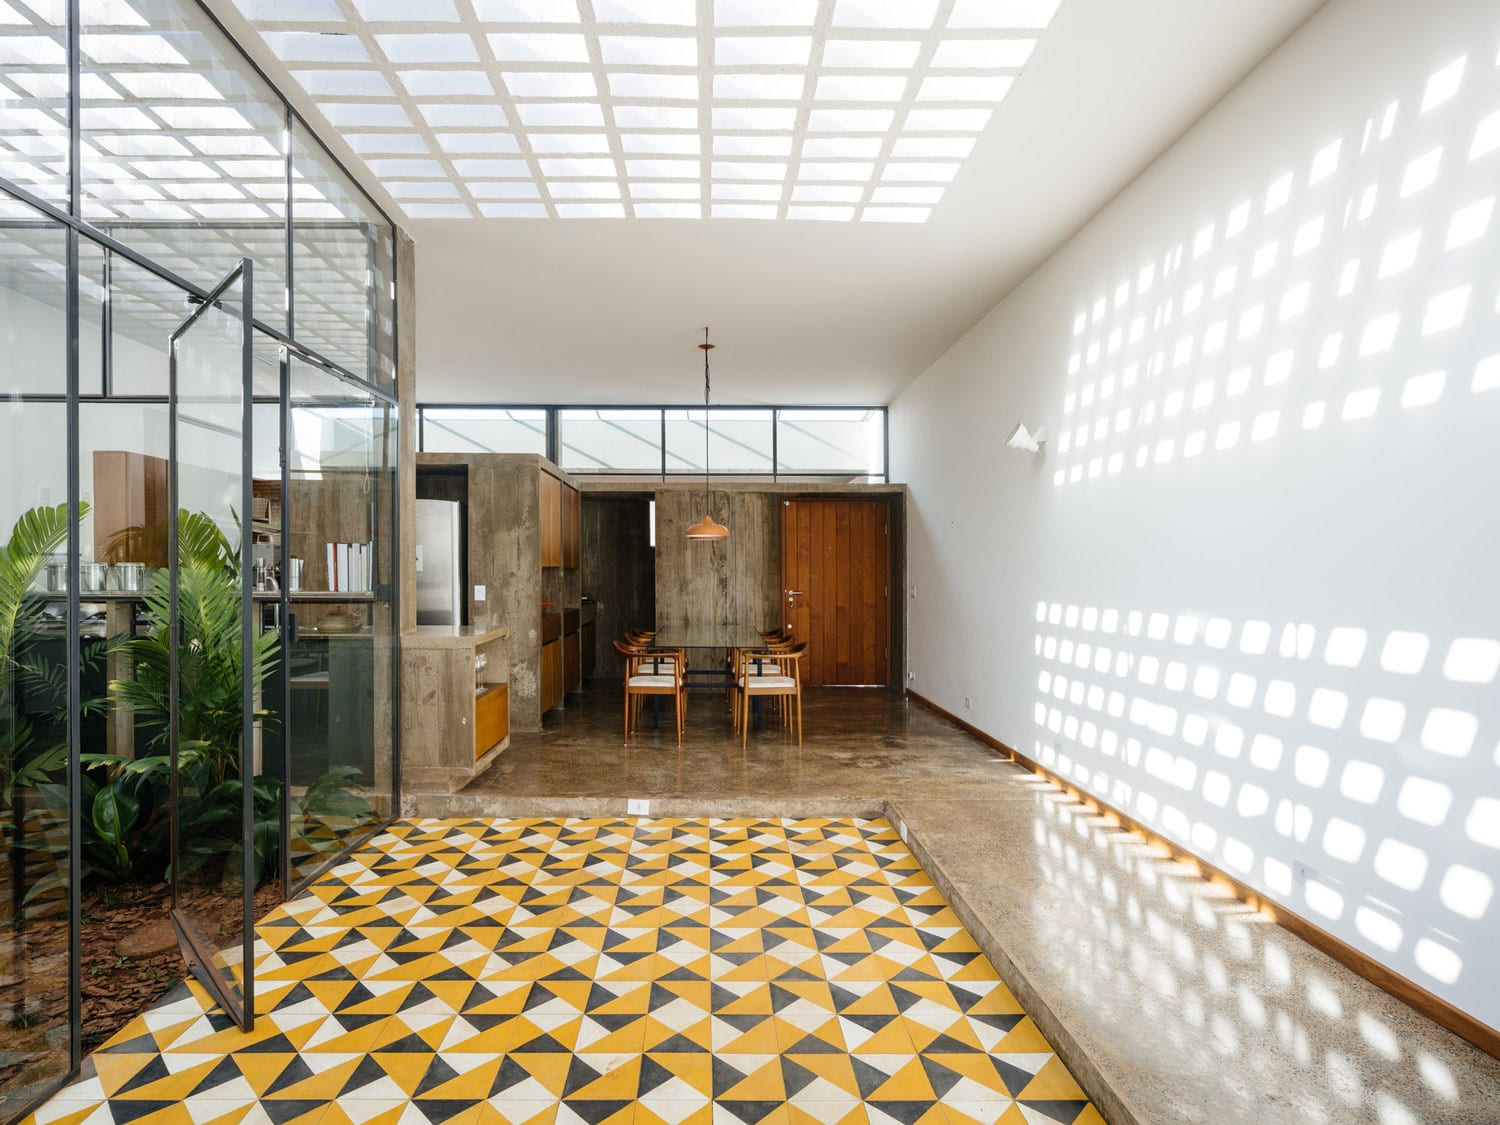 Ownerless House nº 01 in Avaré, Brazil by Vao Arquitetura   Yellowtrace